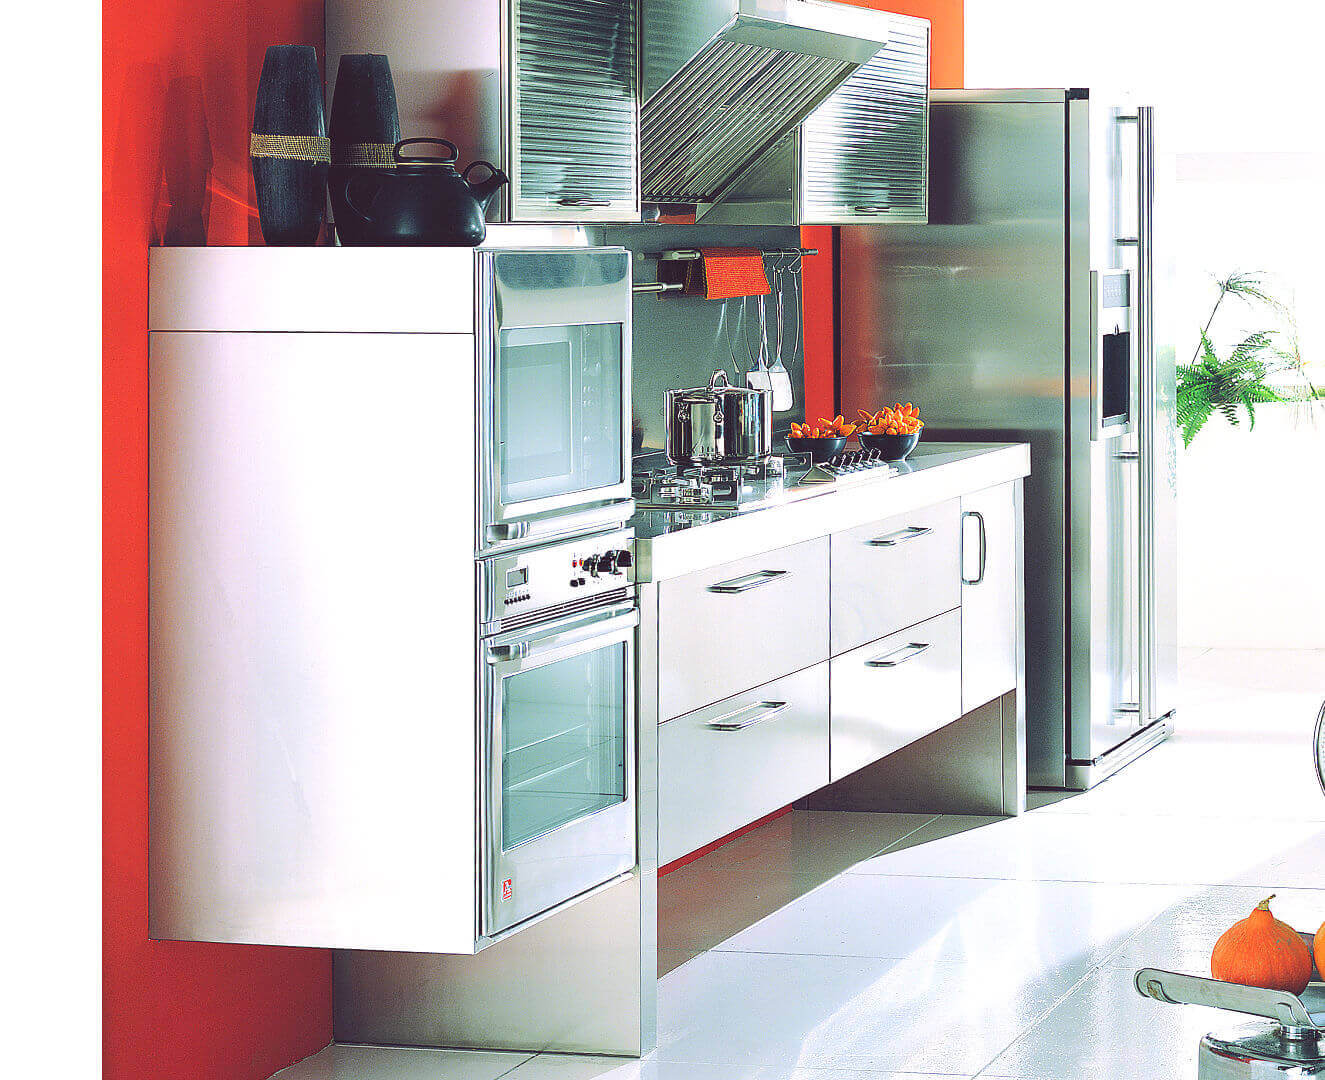 Arca Cucine Italy - Home Kitchen Stainless Steel - Spring - raised